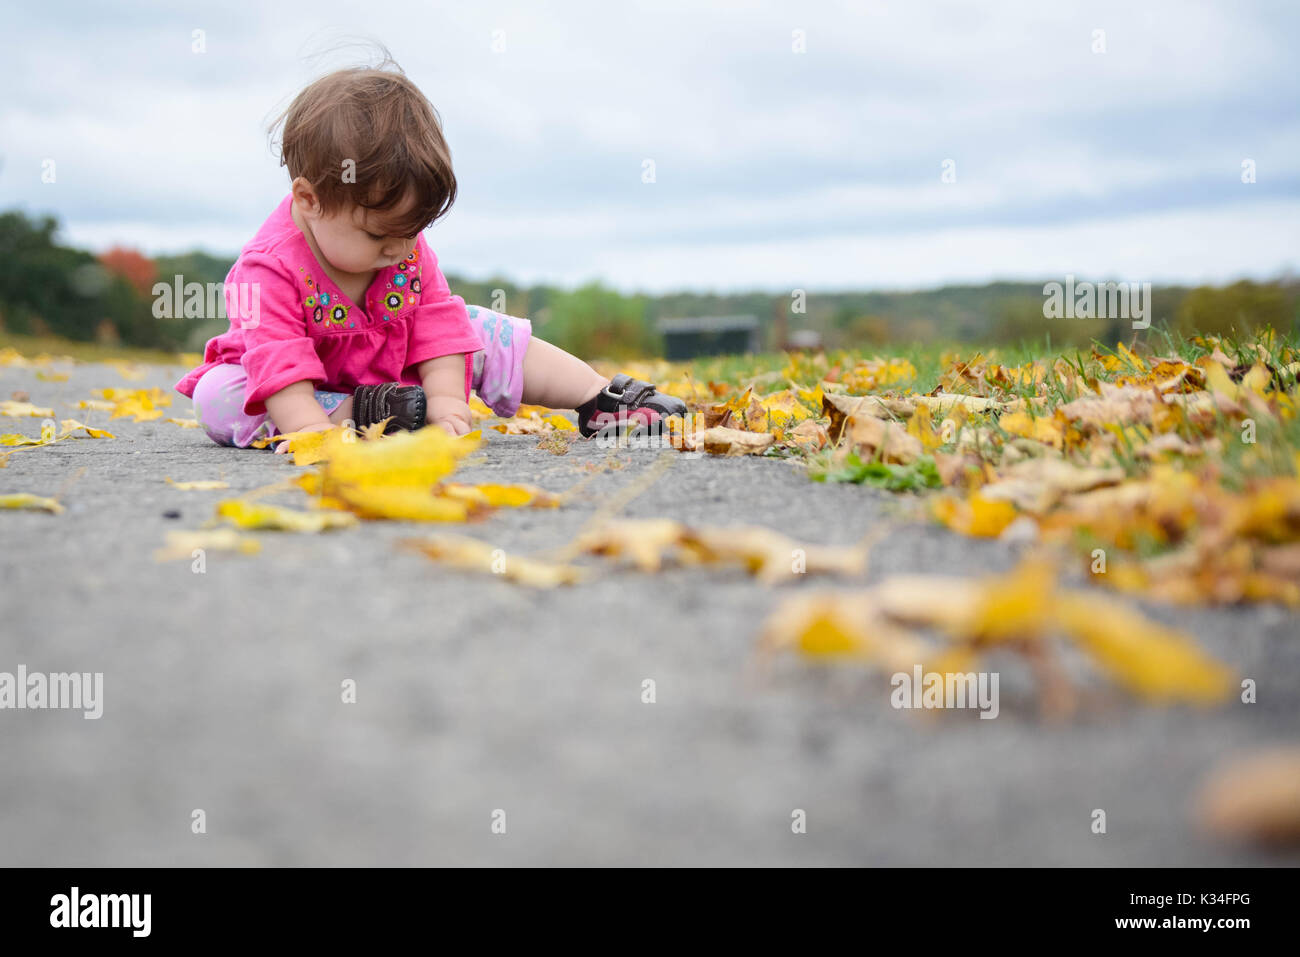 Child sitting among autumn colored leaves - Stock Image